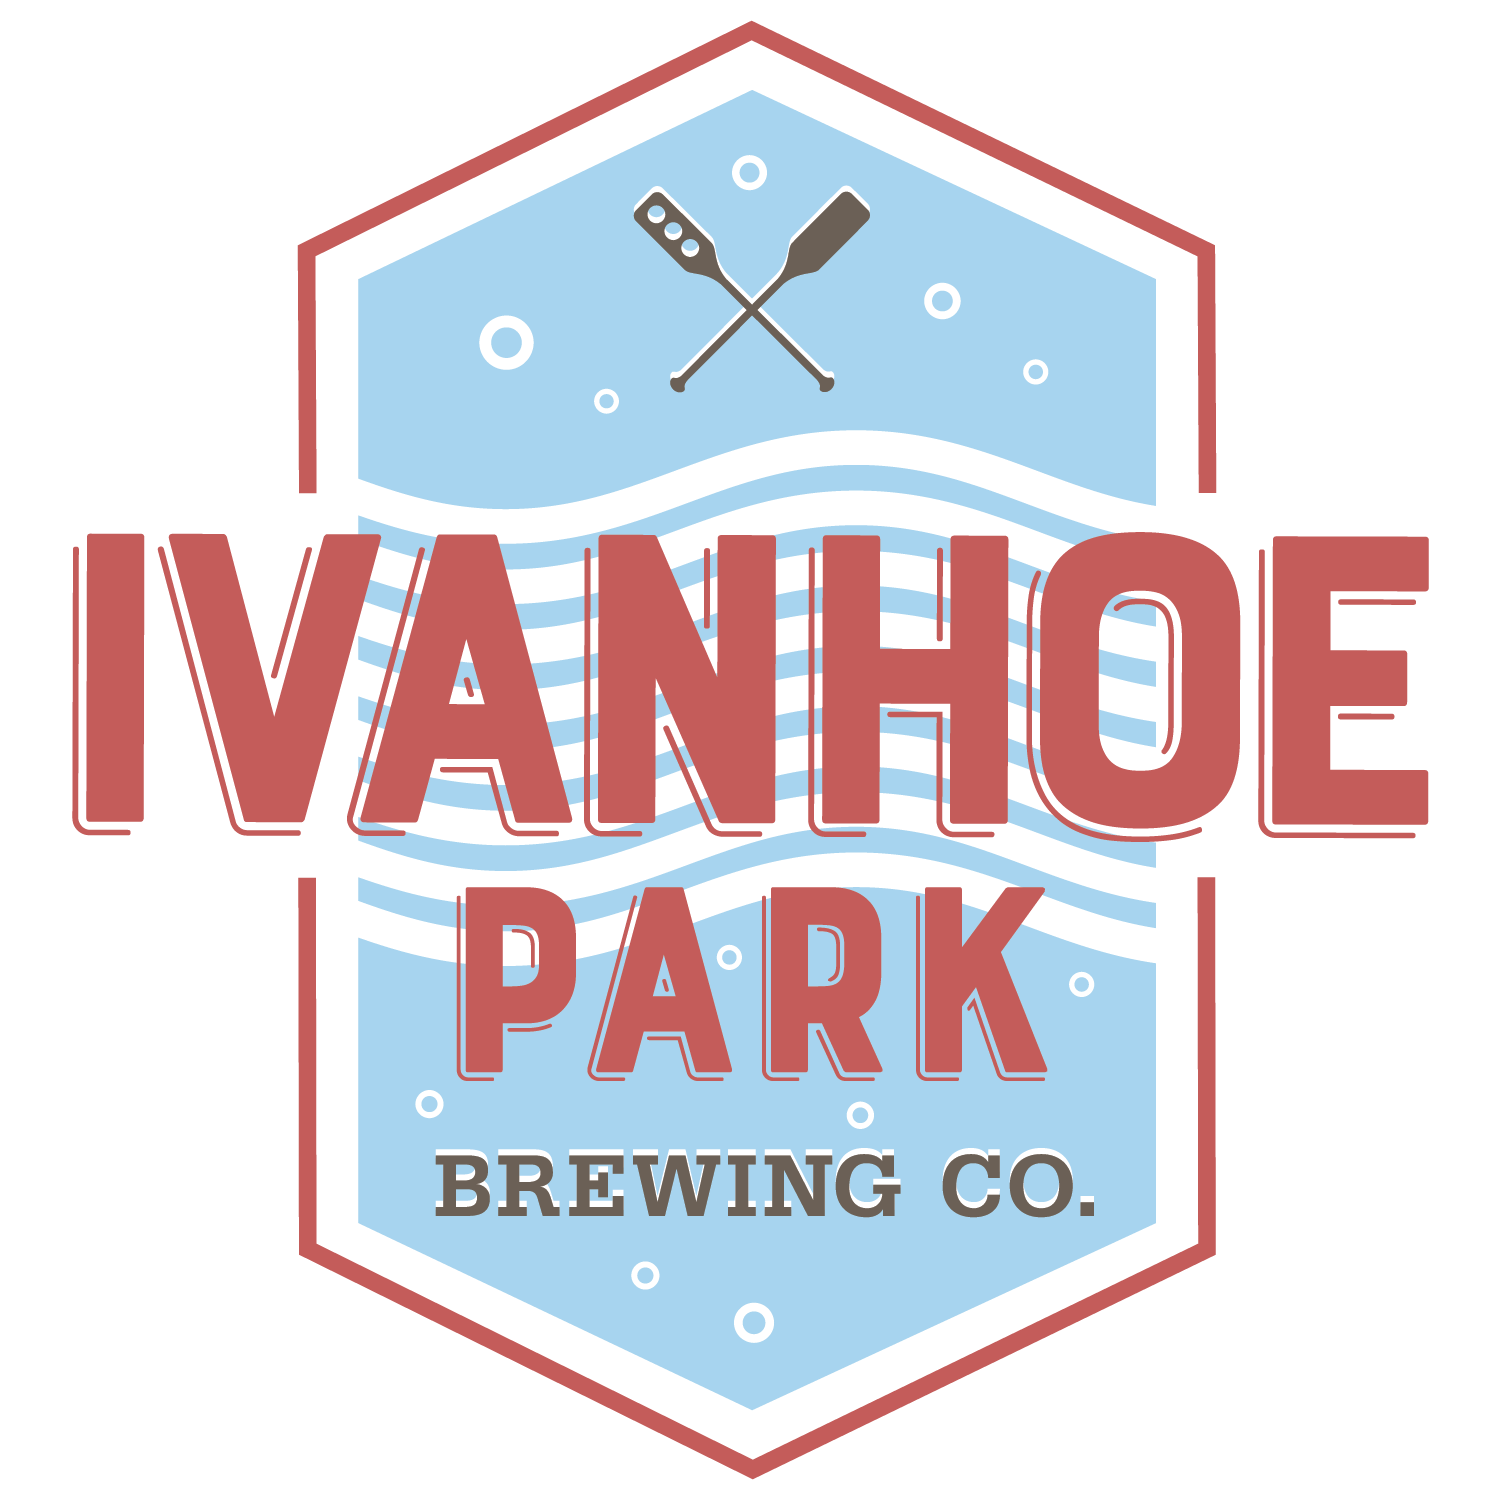 Ivanhoe Park Brewing Co